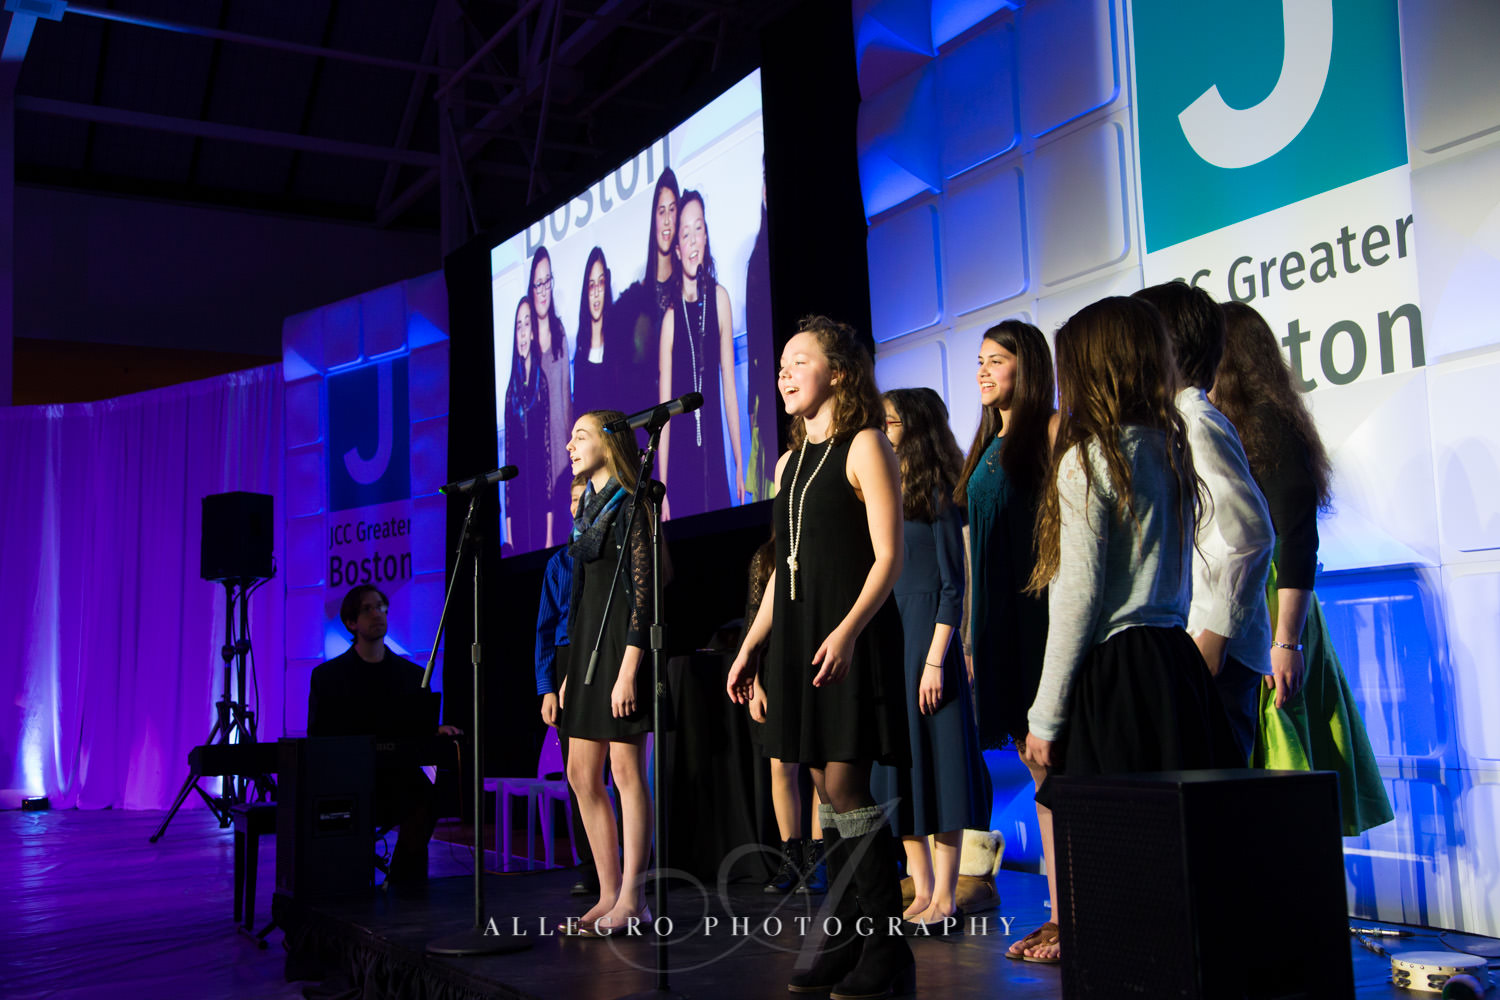 Children singing at nonprofit event photographed by Allegro Photography